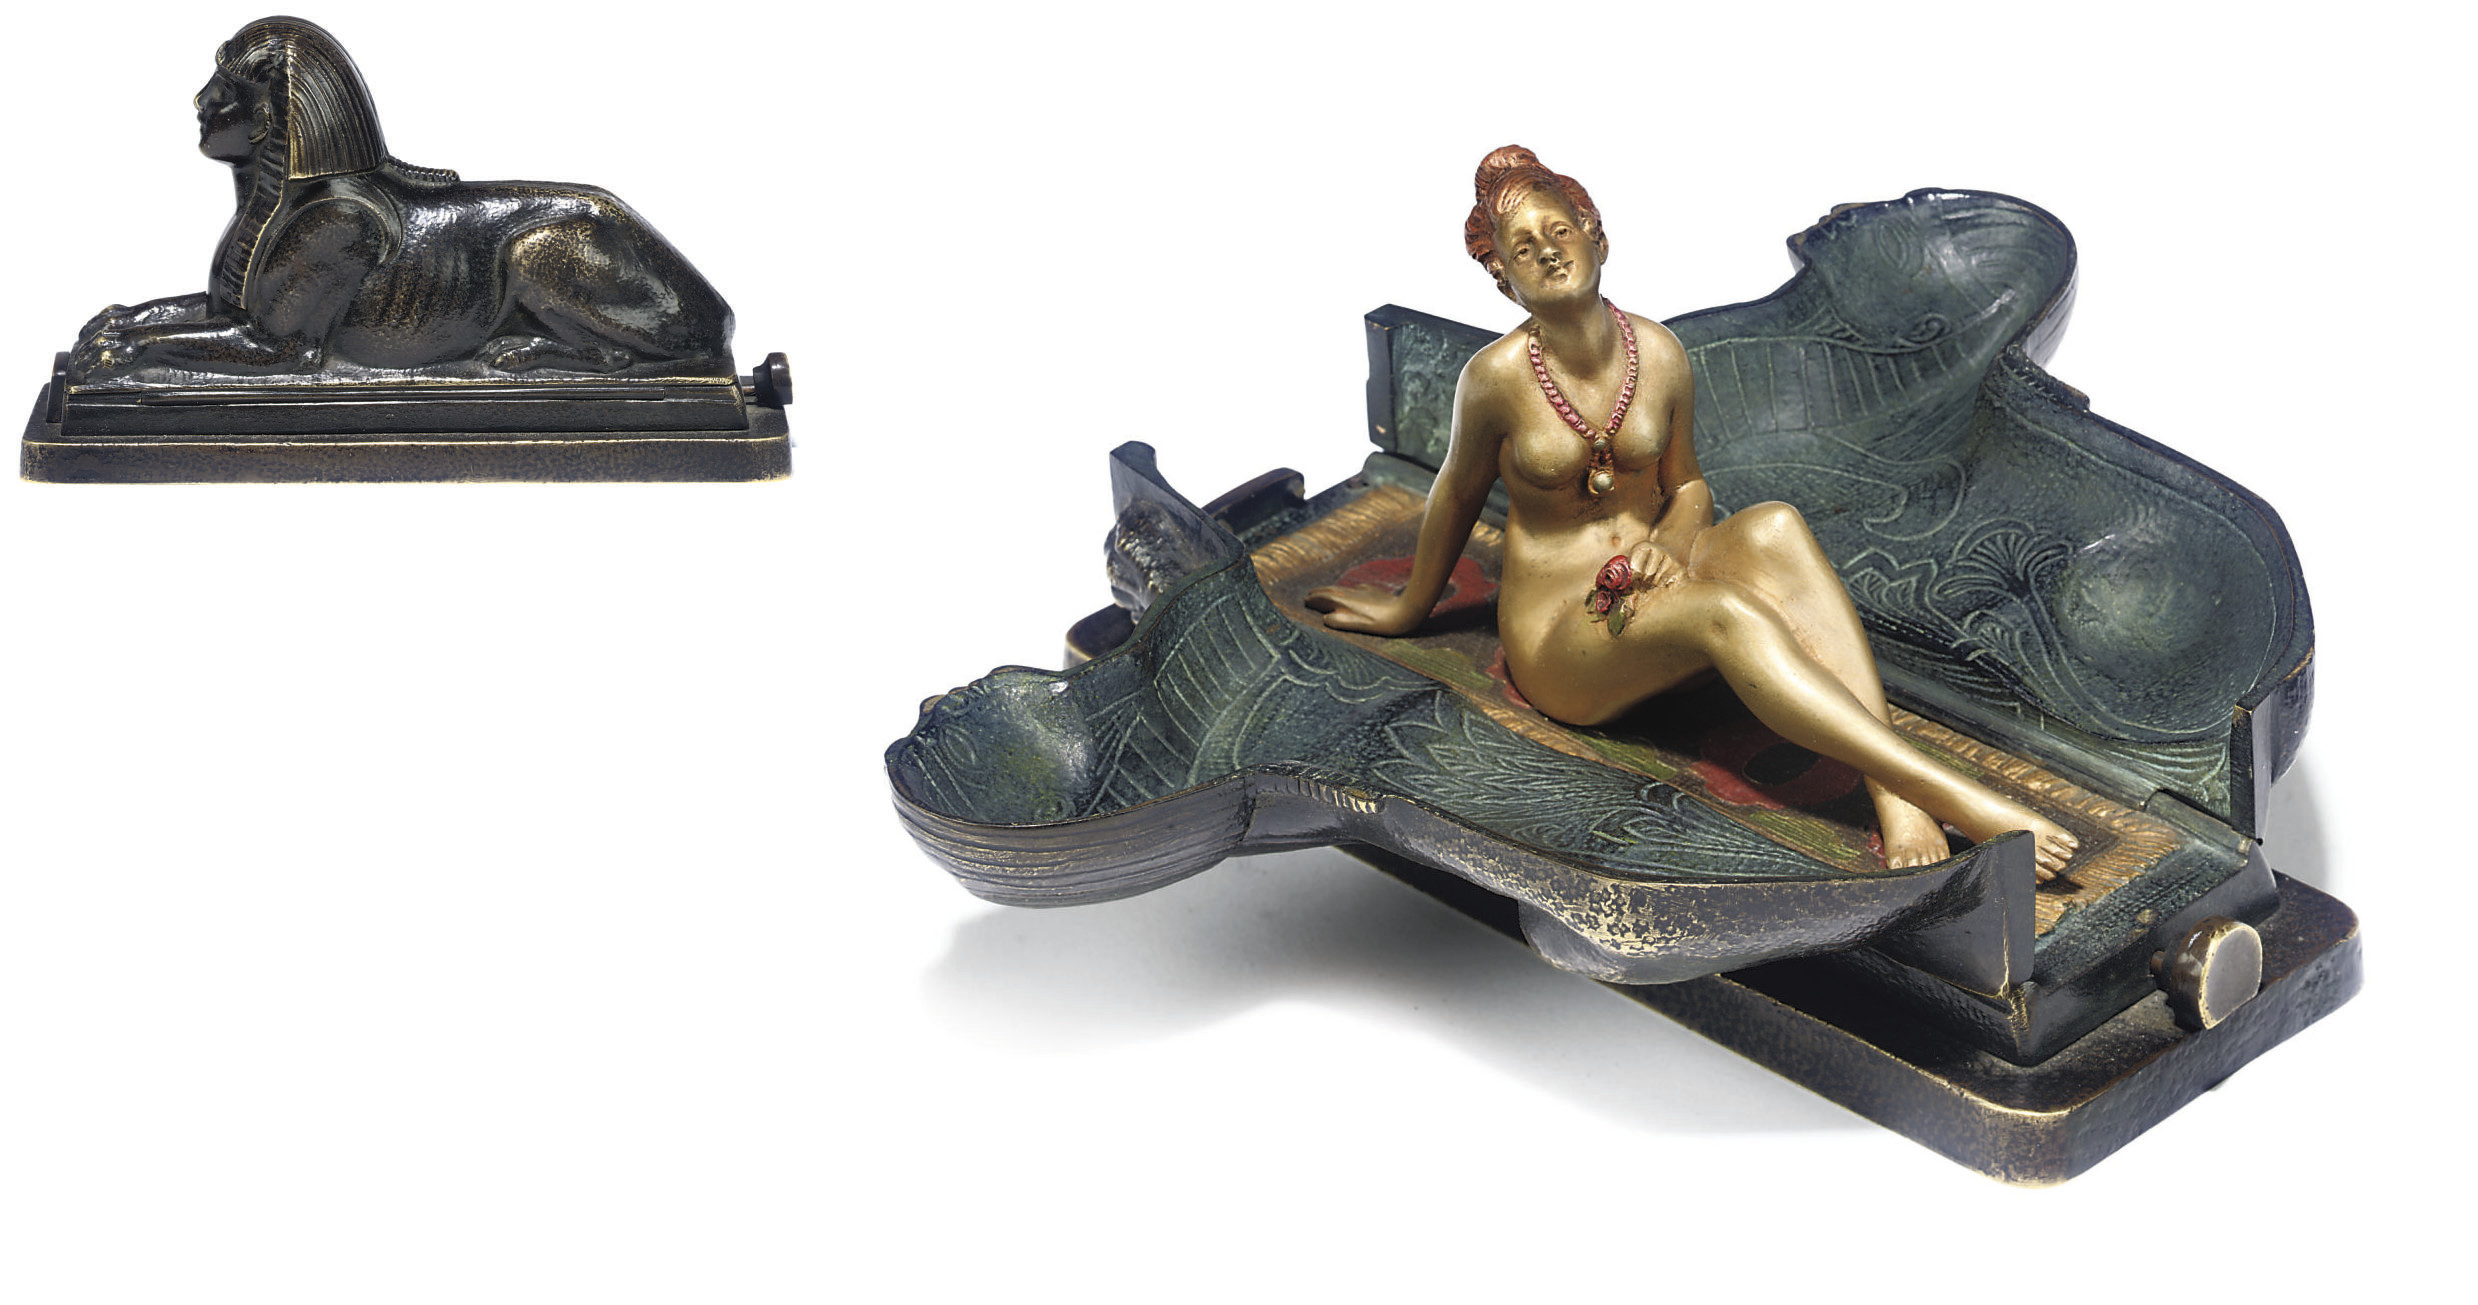 AN AUSTRIAN COLD-PAINTED EROTIC BRONZE GROUP